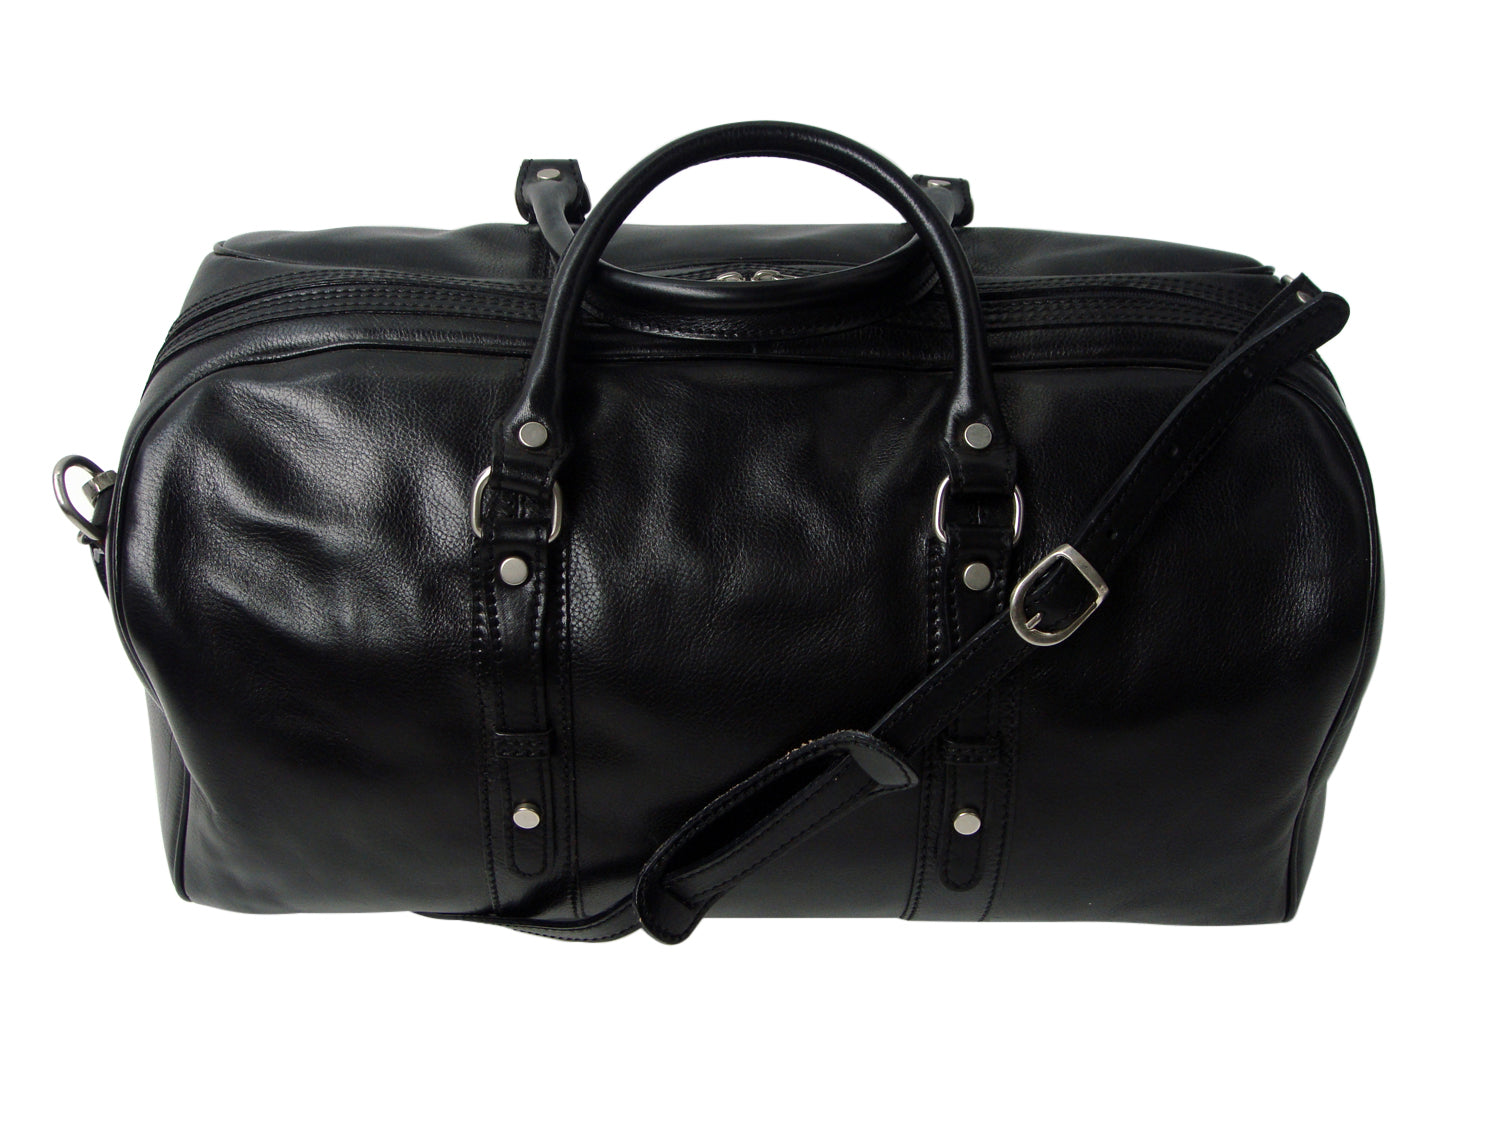 Luciano Fabrini Large Leather Barrel Bag - Black